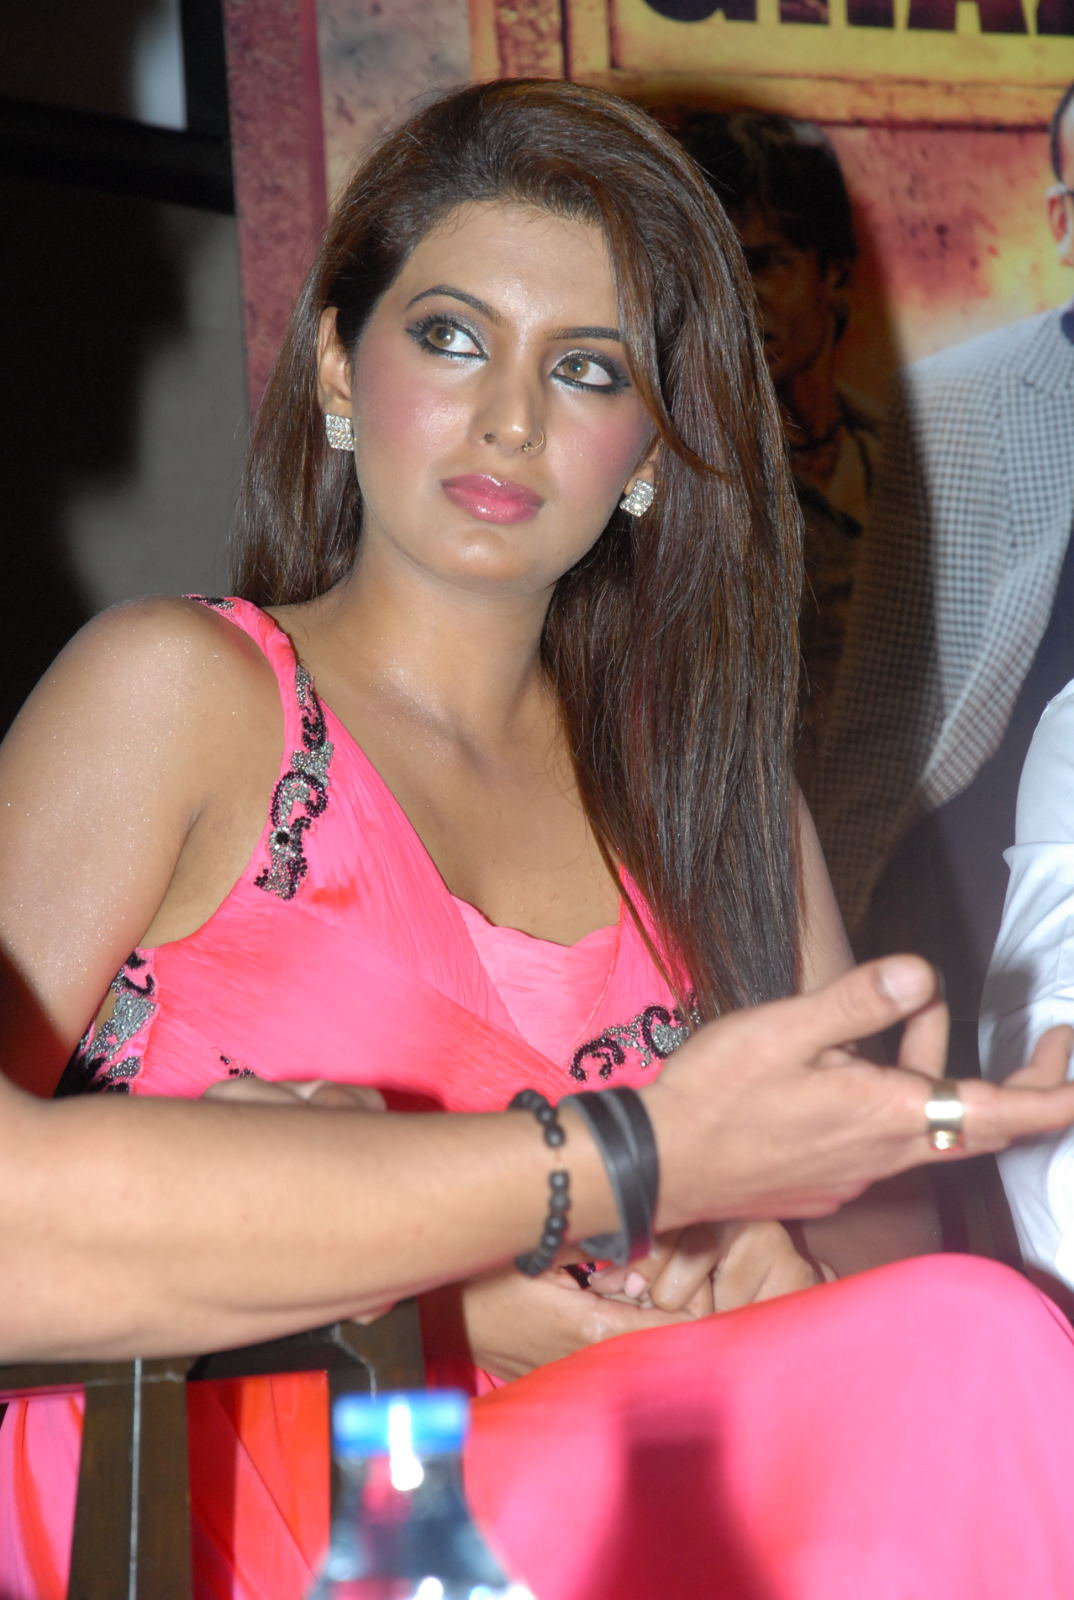 Geeta basra hot in pink